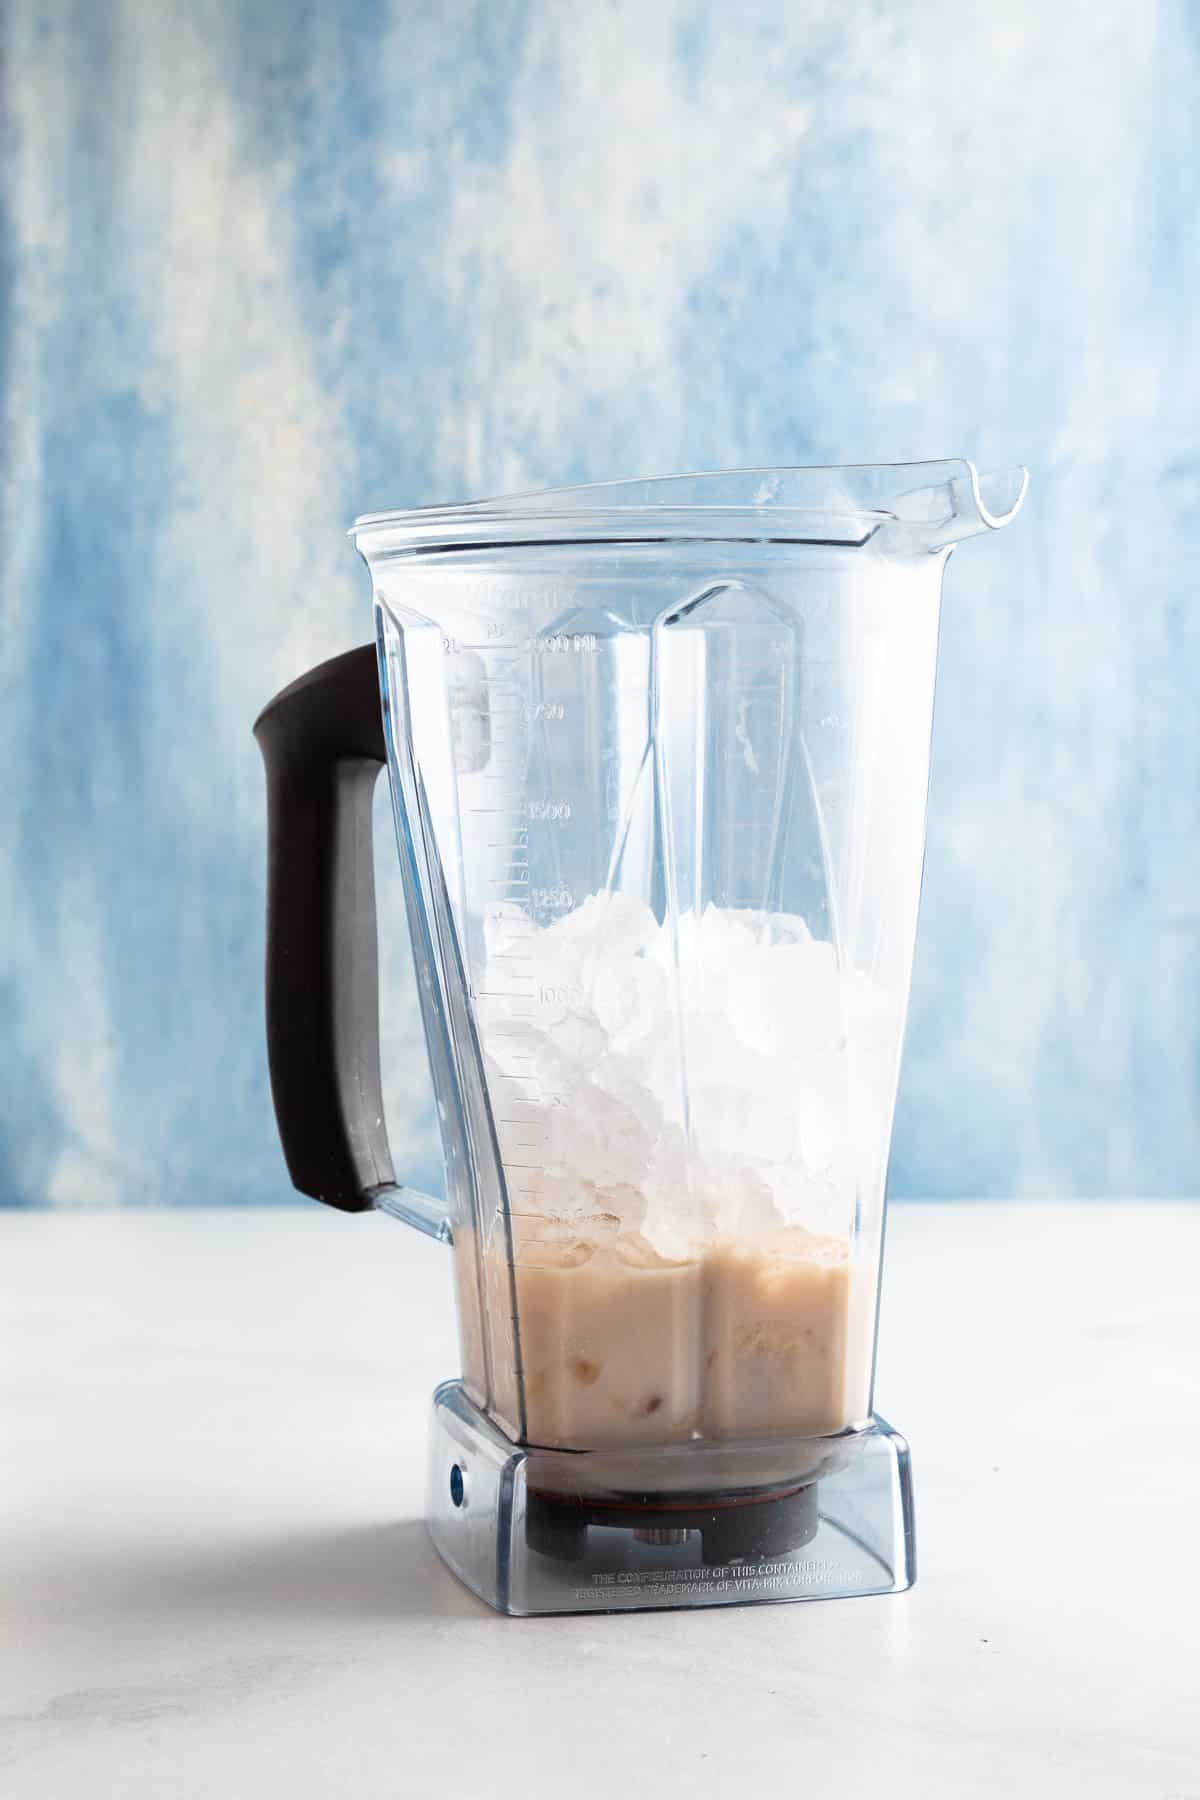 vitamix blender filled with drink ingredients in front of a blue background